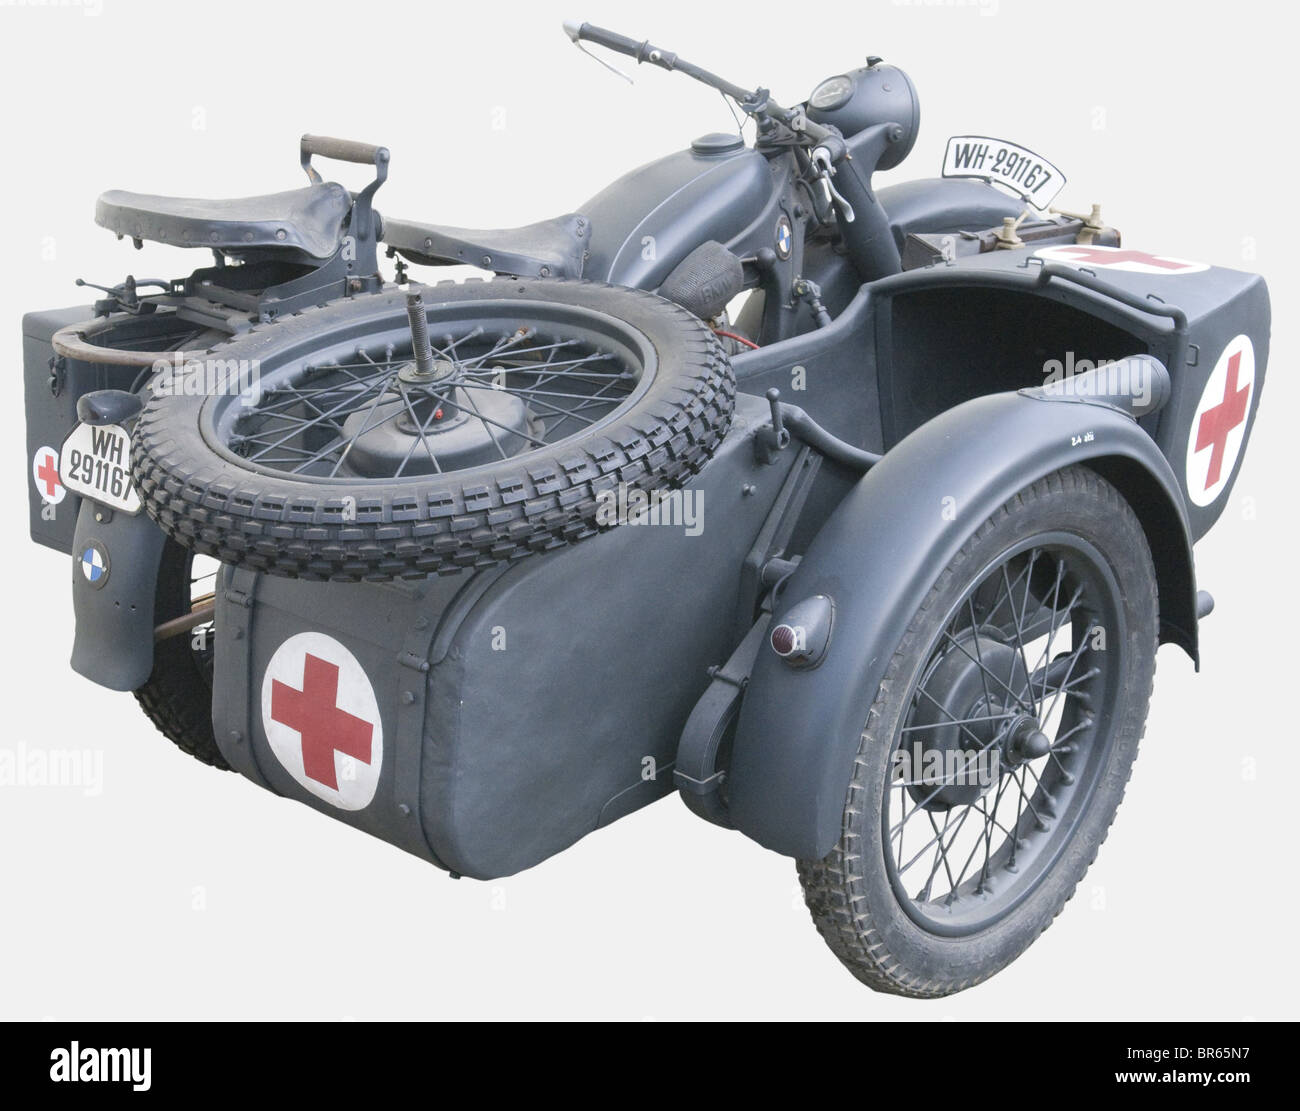 A BMW R12 Motorcycle With Sidecar., The Production Of The